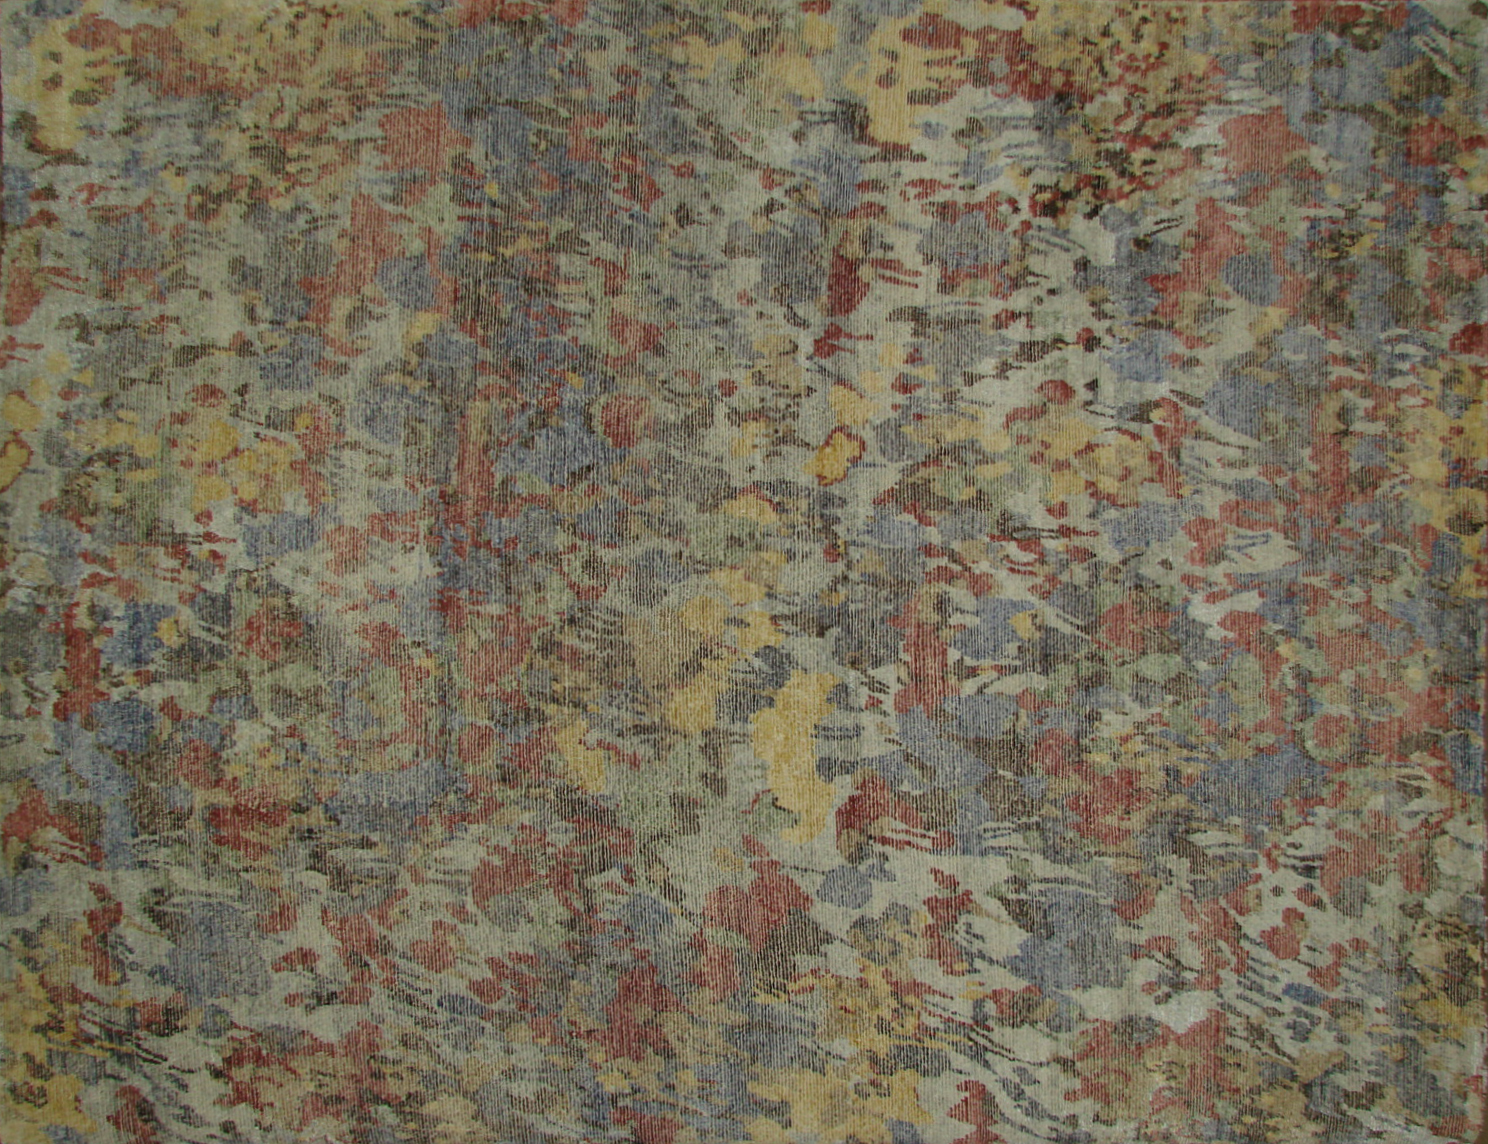 8x10 Contemporary Hand Knotted Wool Area Rug - MR20430